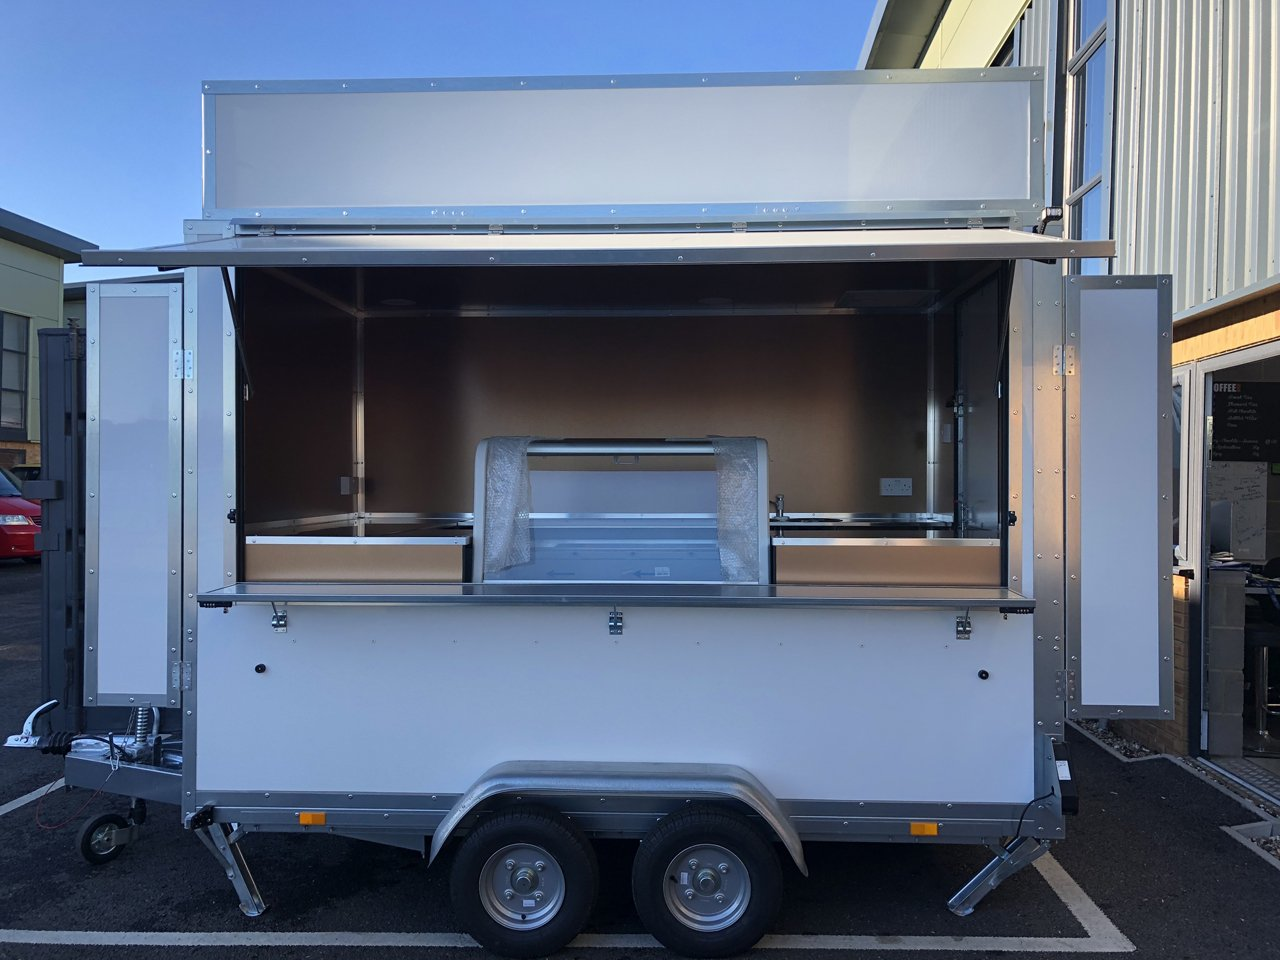 Custom catering trailer fully built to specifications